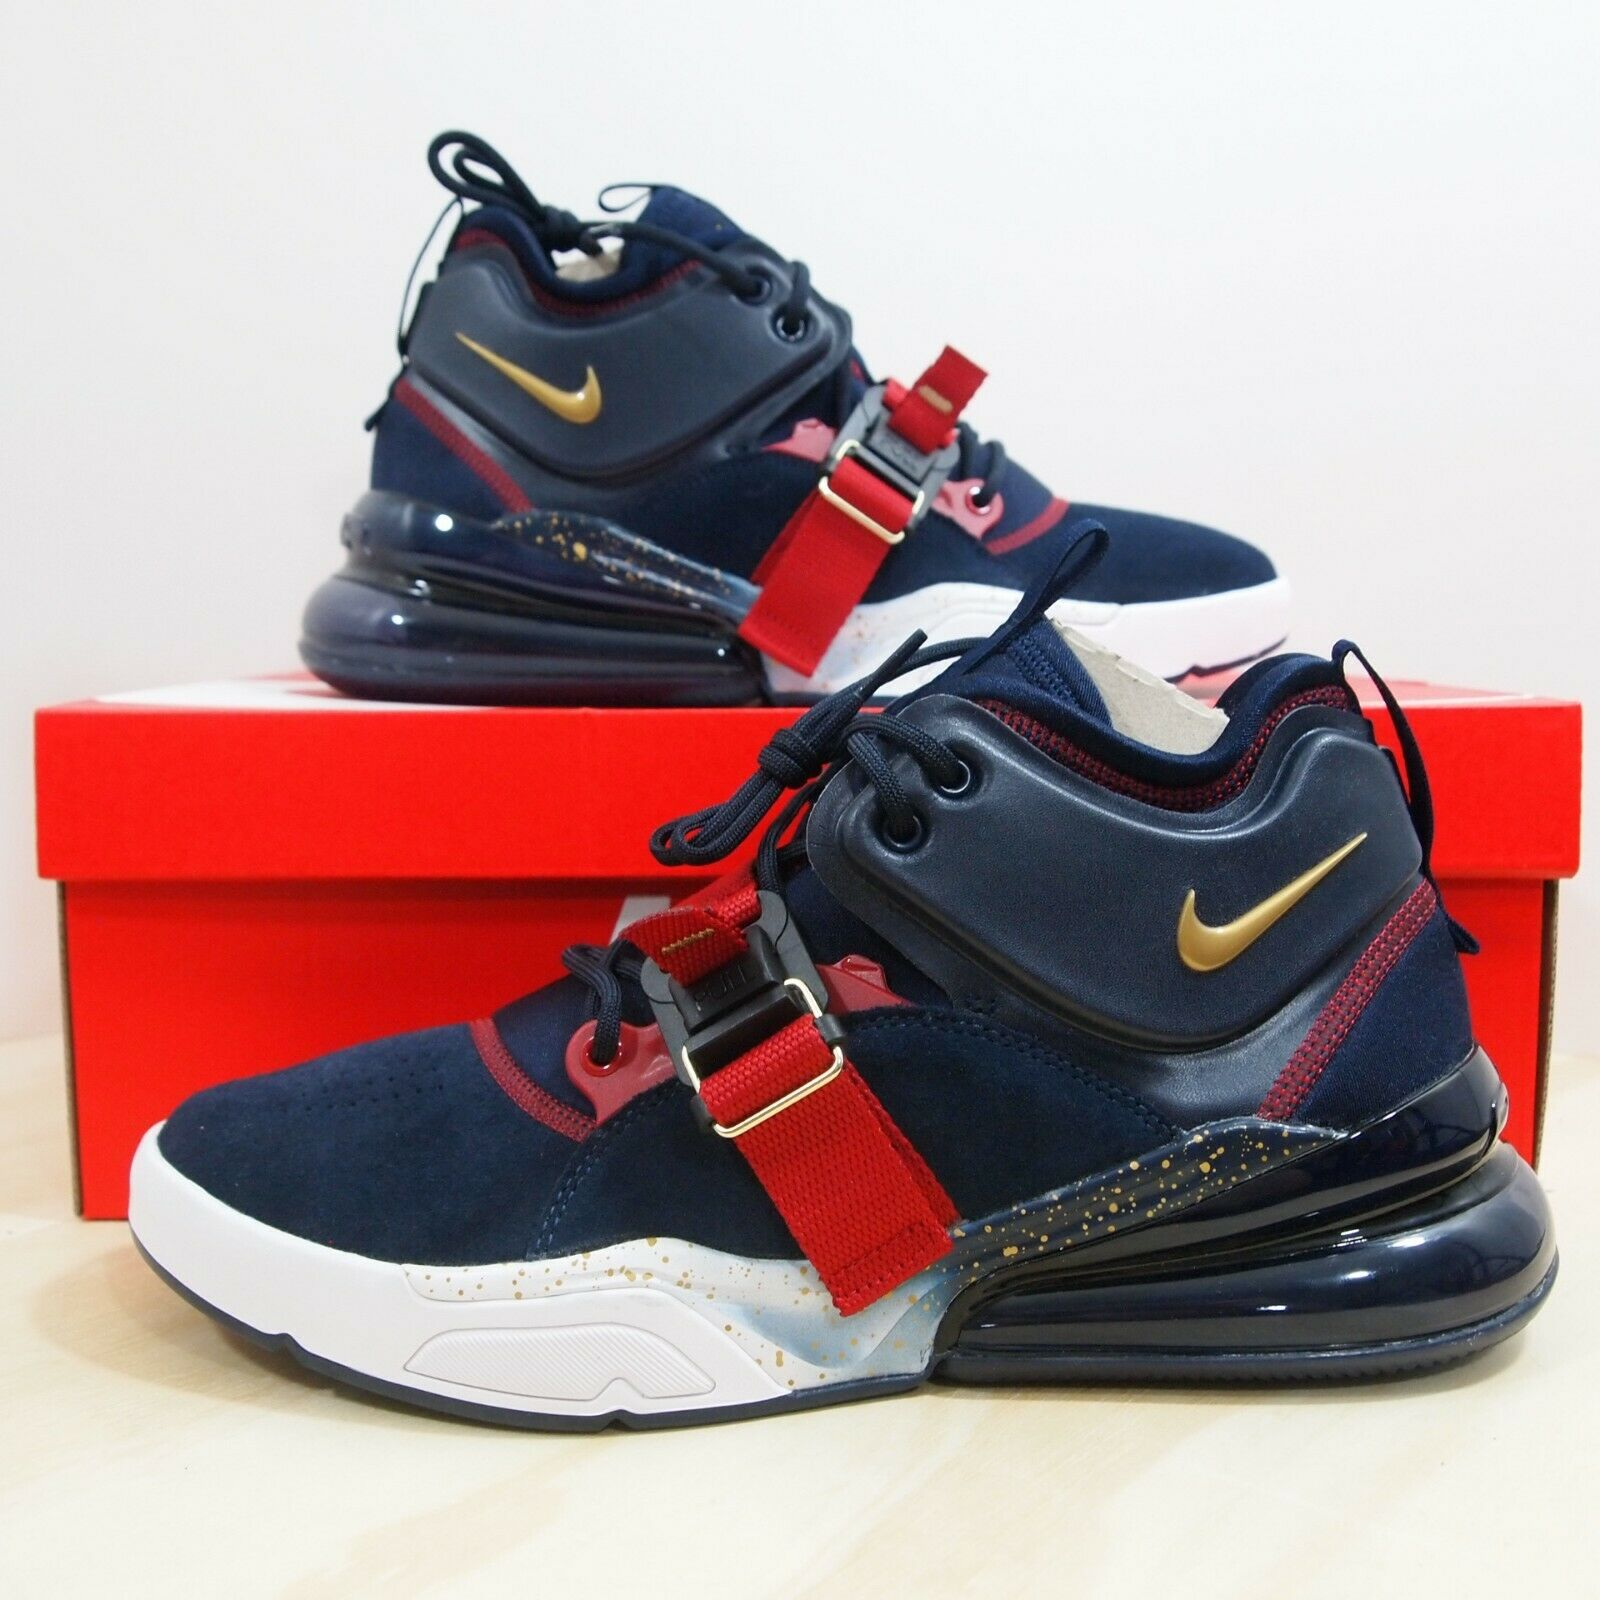 9f018e9bf5 Nike Air Force 270 Men's Size 10.5 Olympic Dream Team Obsidian gold AH6772 -400